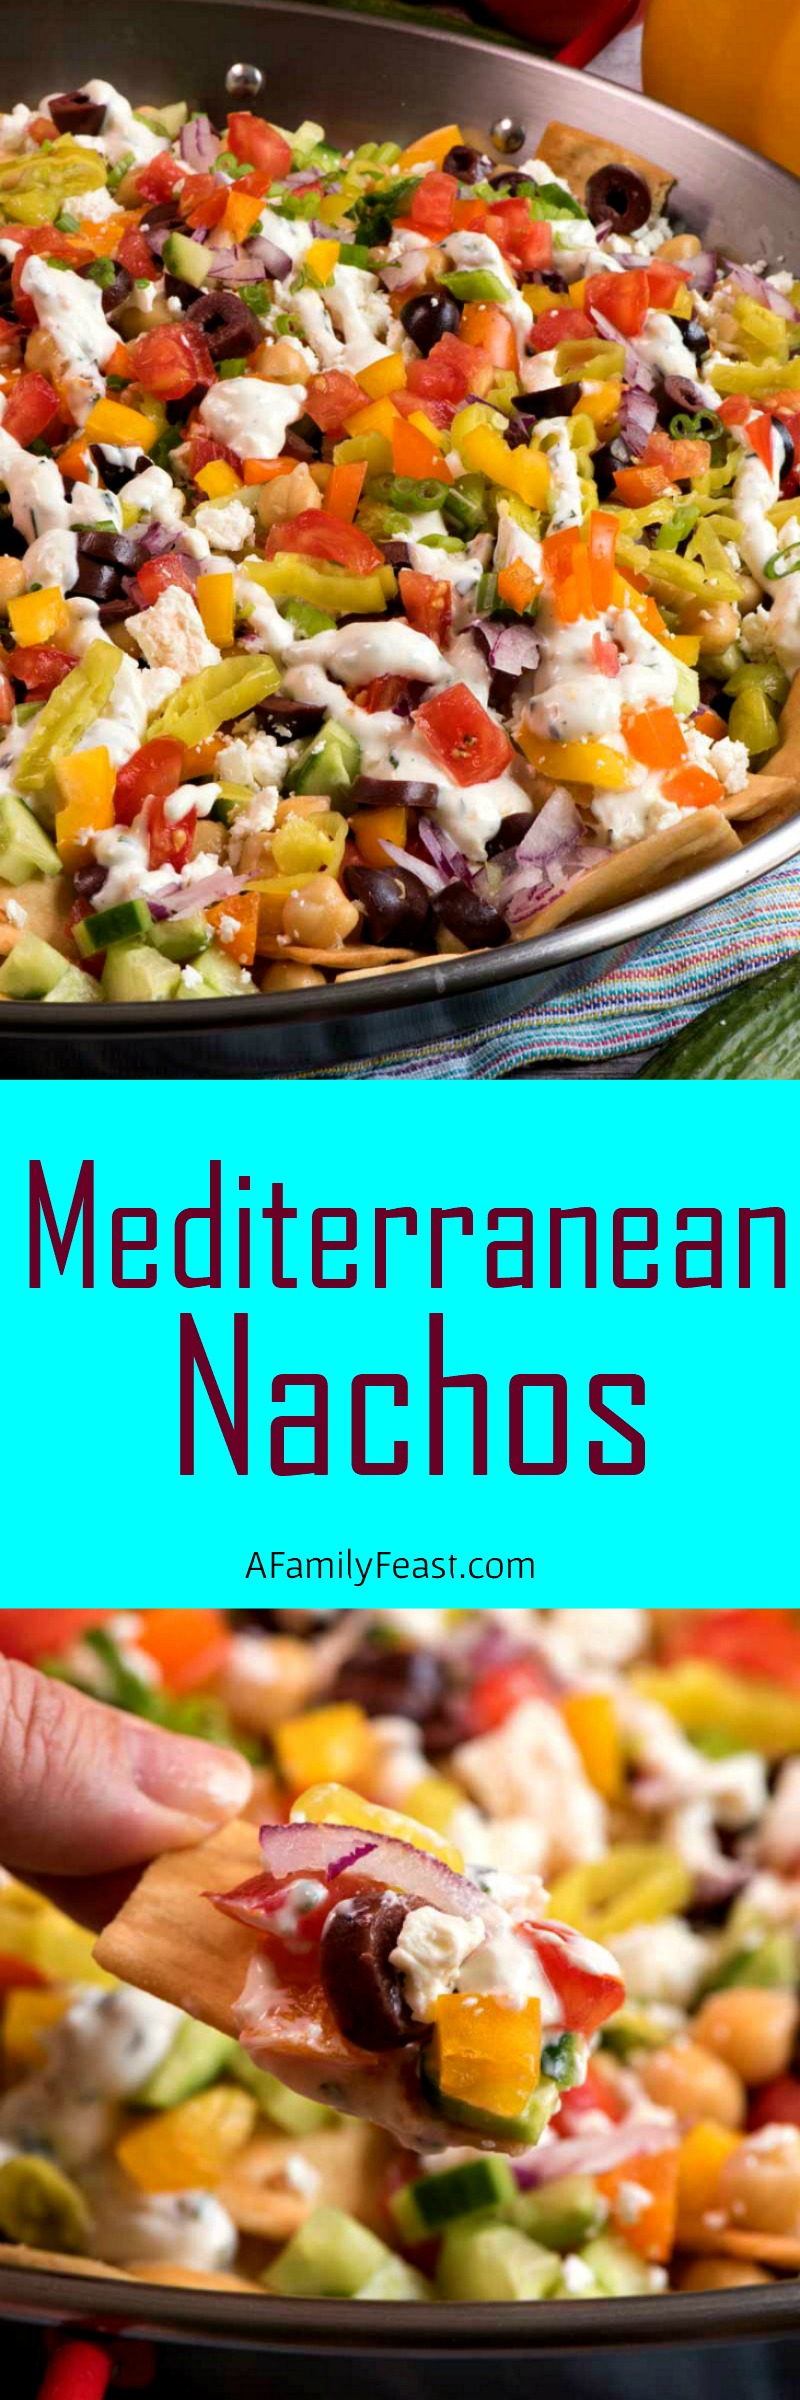 Mediterranean Nachos - fresh vegetables, Greek yogurt and crispy pita chips